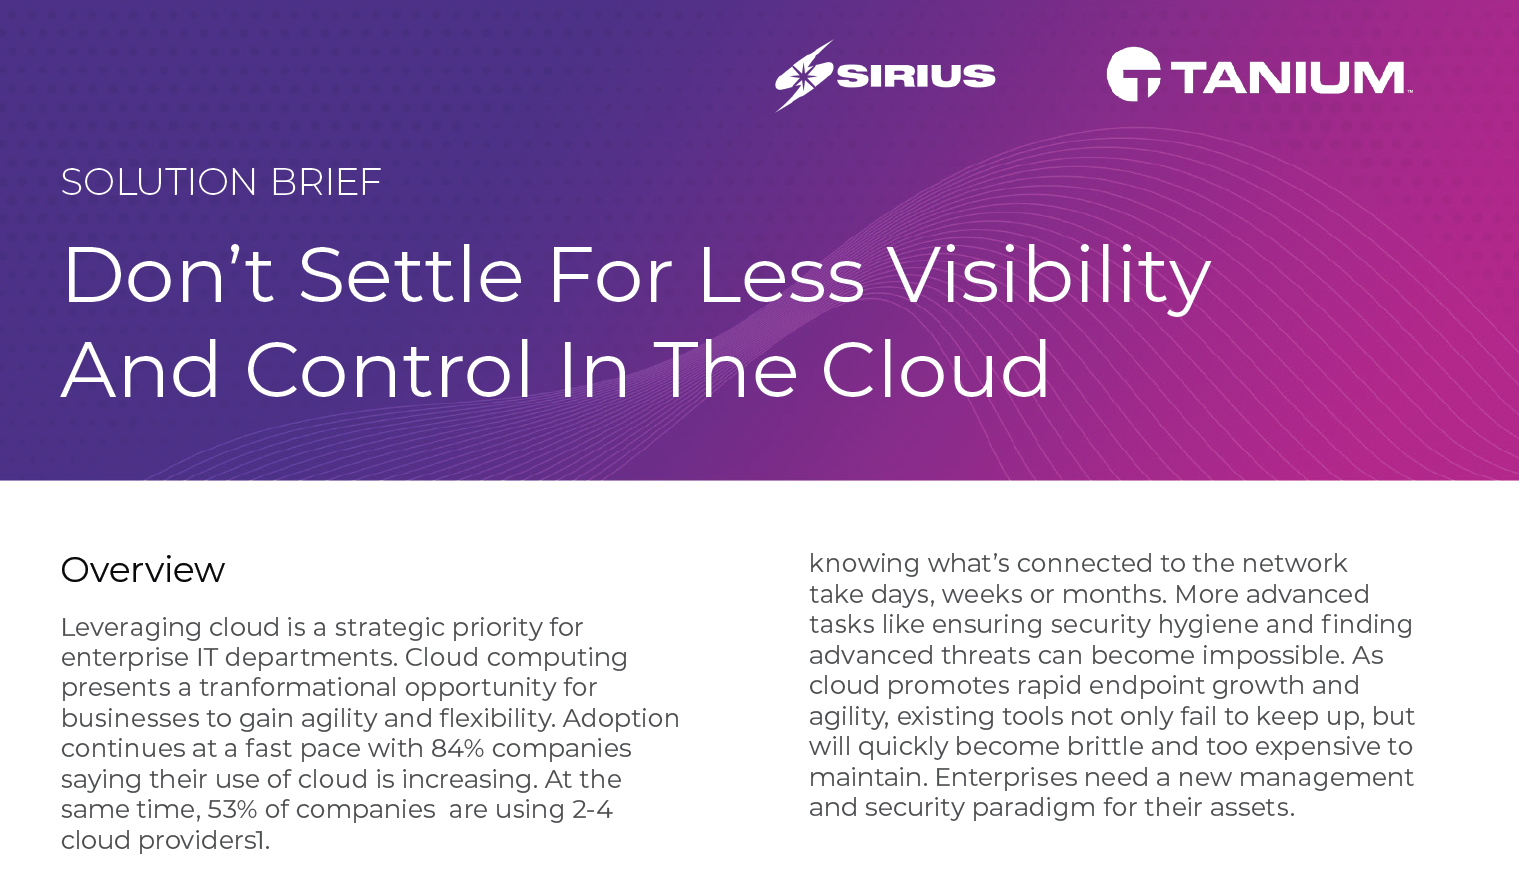 Solution Brief: Don't Settle For Less Visibility And Control In The Cloud